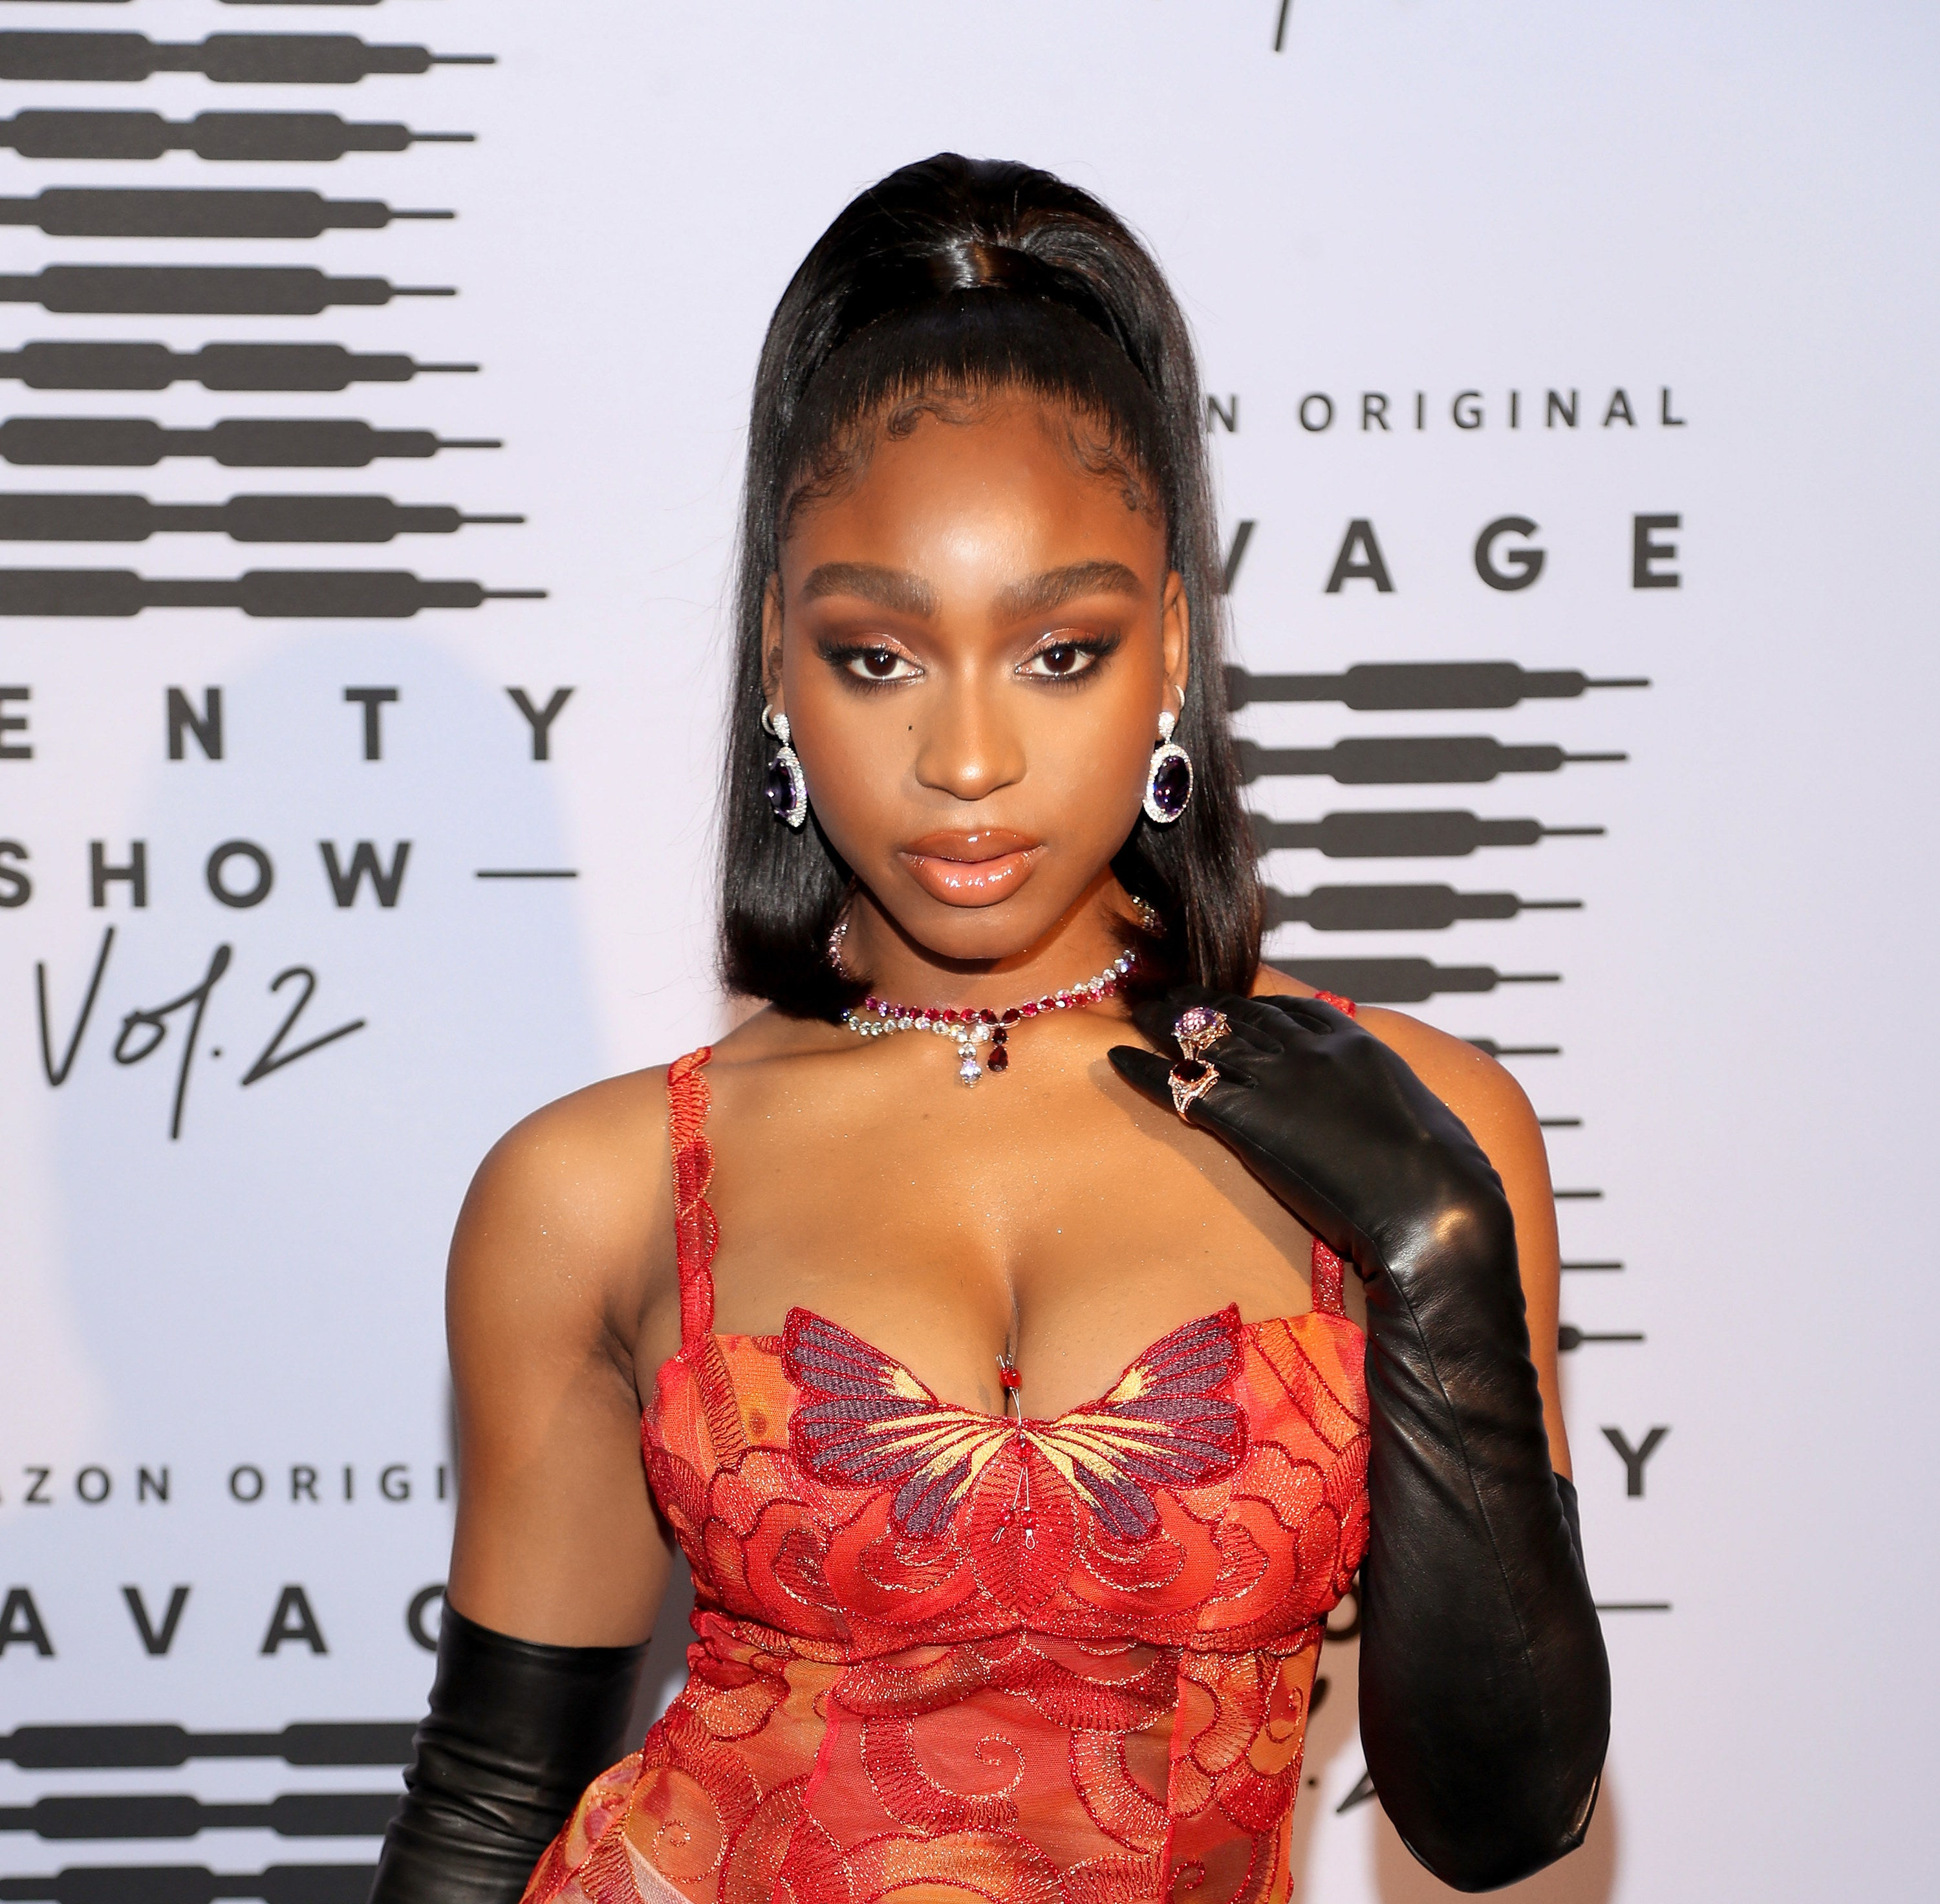 Normani on a red carpet with a red top and long black leather opera gloves